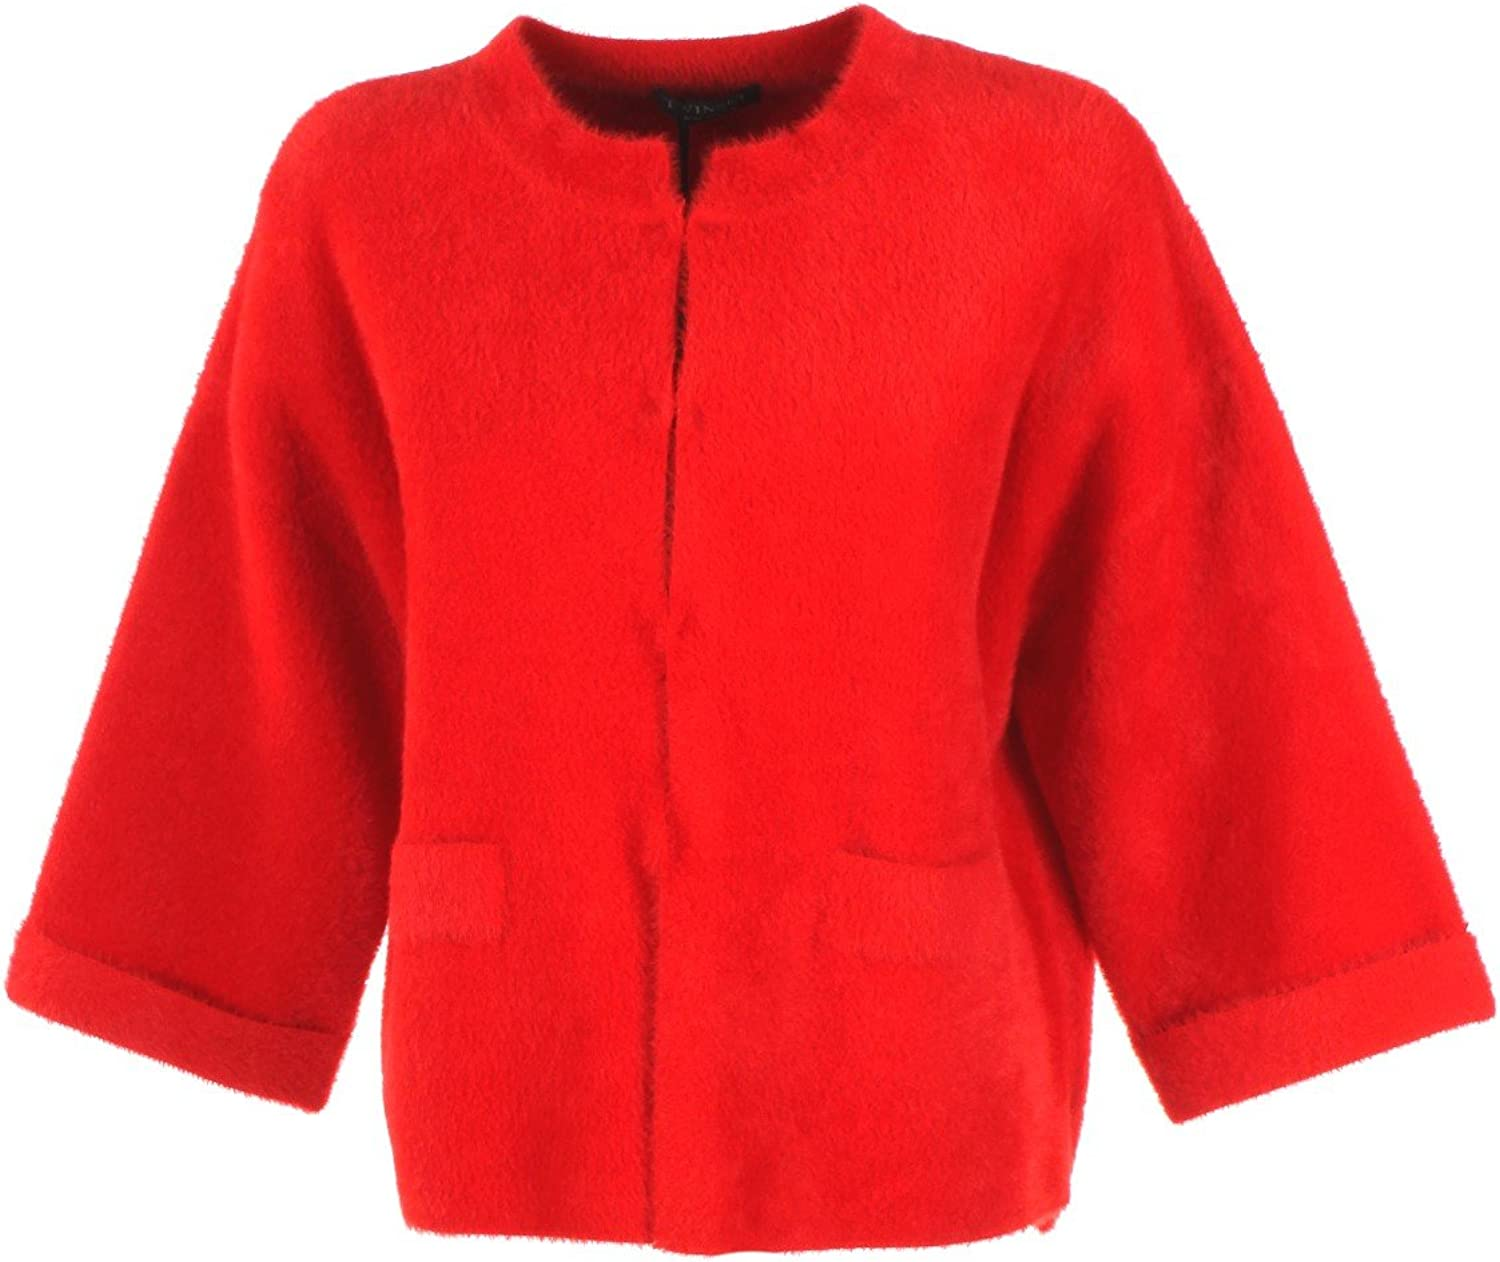 Twinset Milano Giacca Donna Twin-Set XS Rosso Ta73gc Autunno Inverno